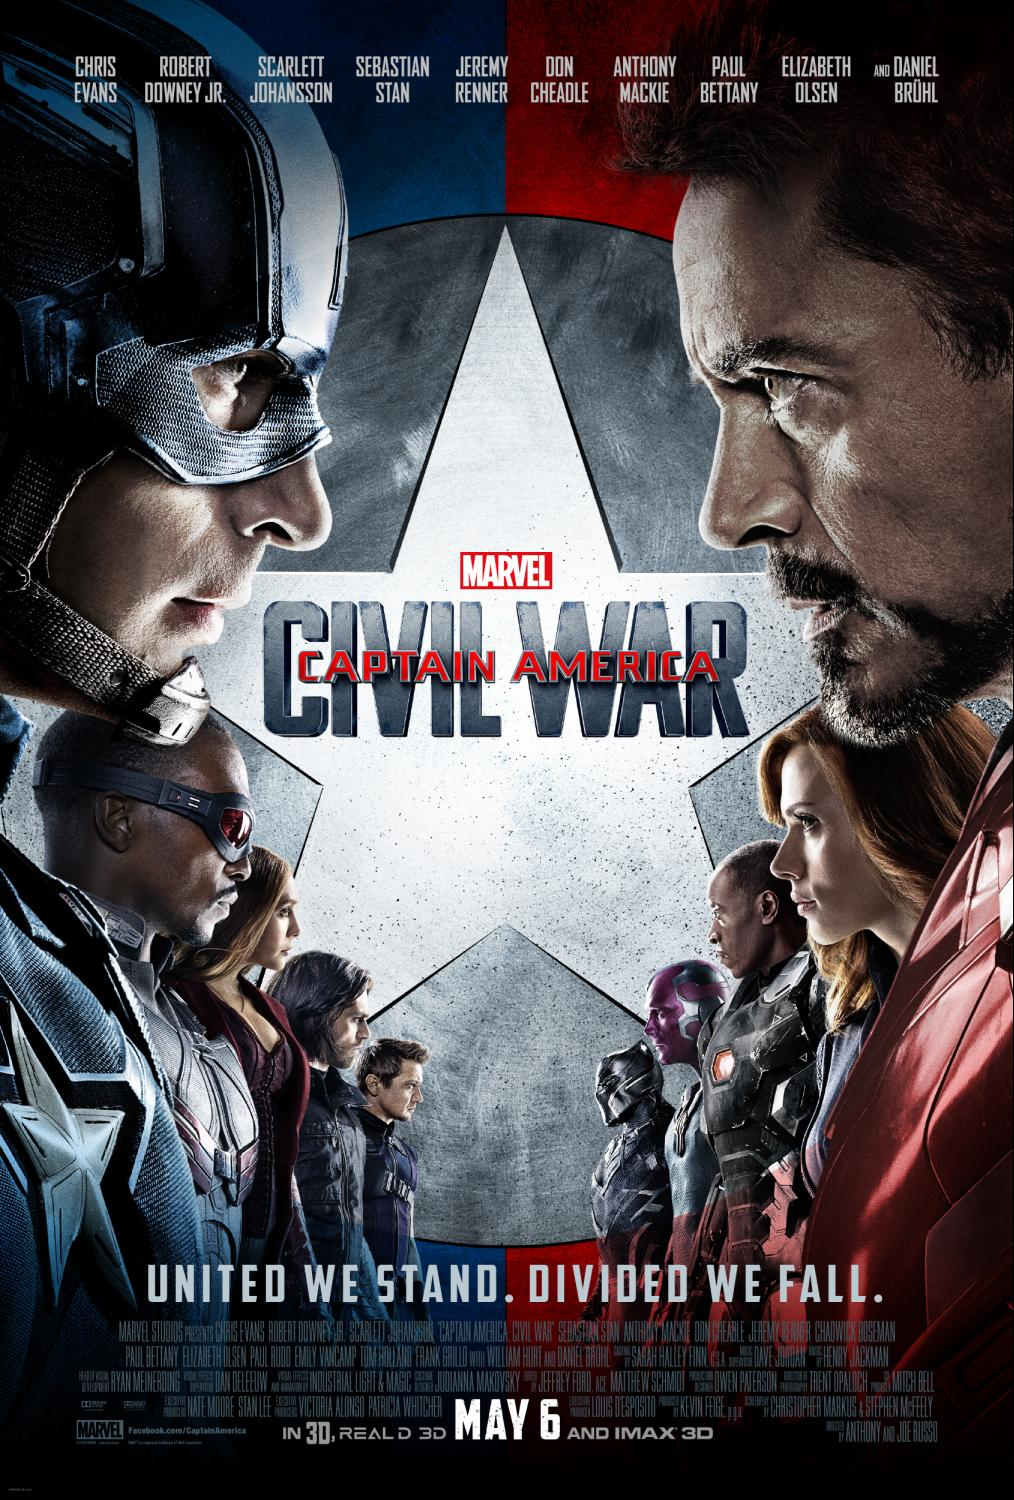 Marvel's CAPTAIN AMERICA: CIVIL WAR trailer